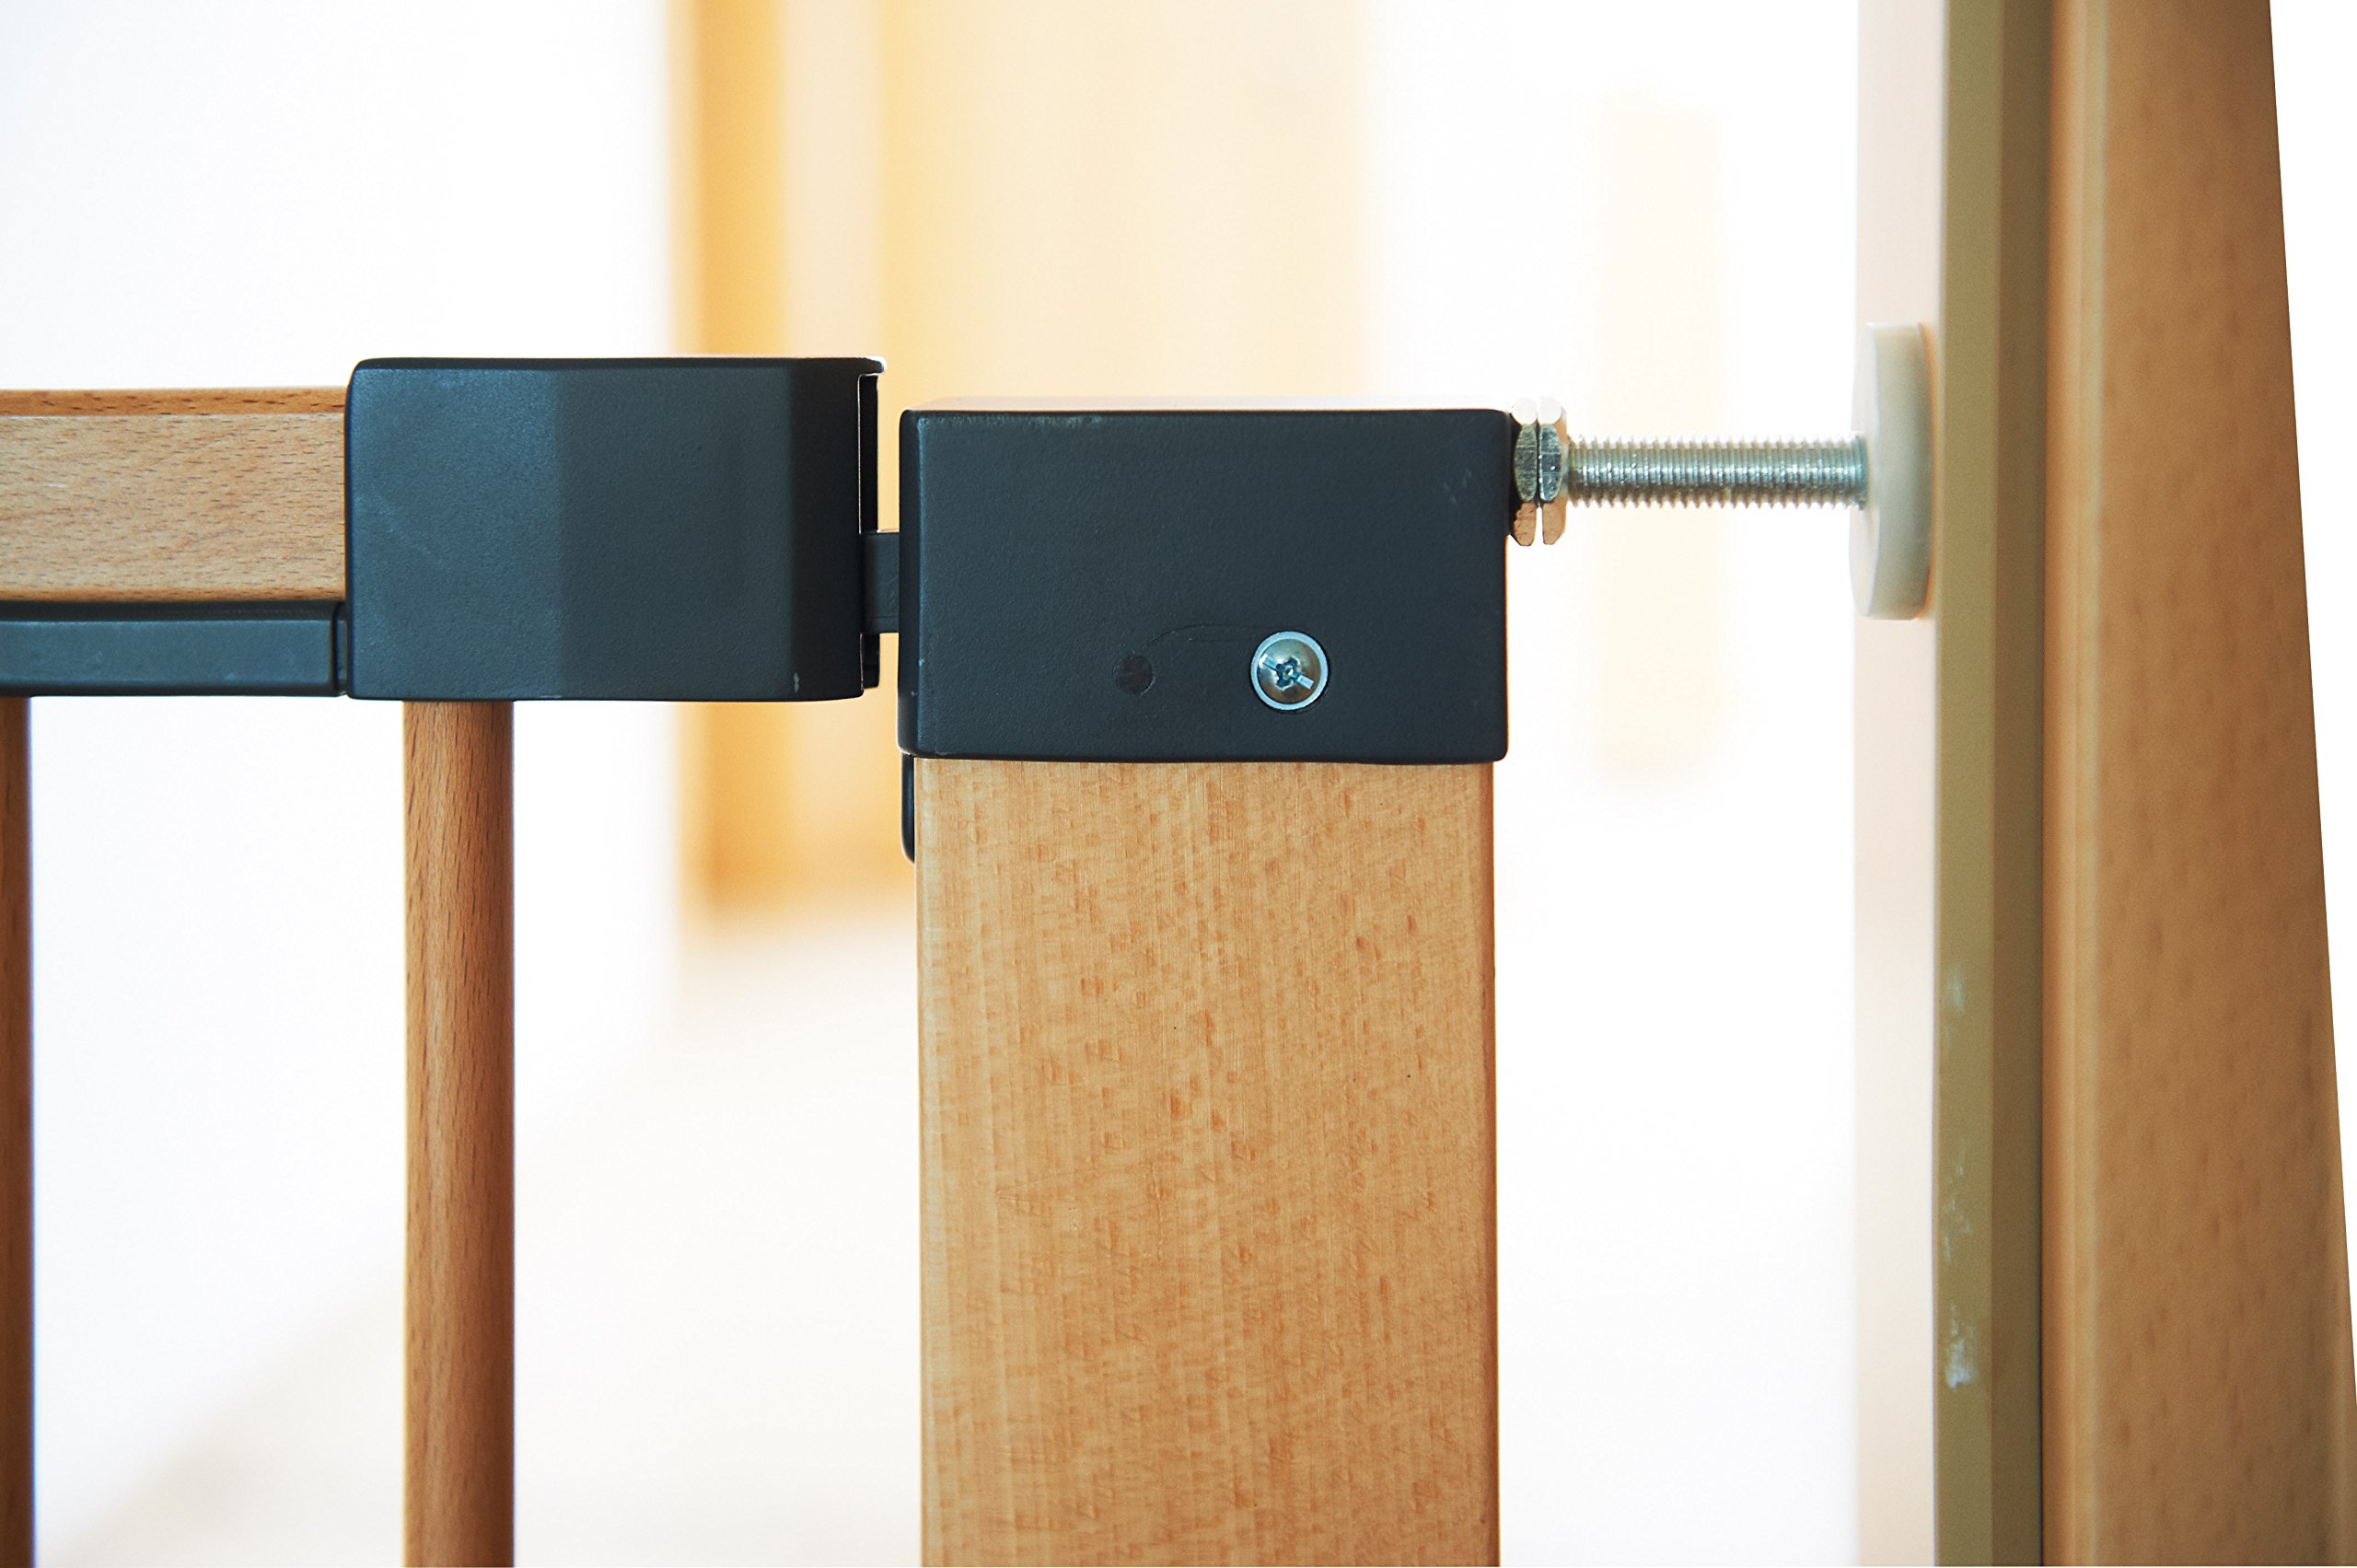 Geuther Door Safety Gate Easy Lock (Wood, Range of Adjustment 75.5 - 83.5cm)  Solid Beech Wood Door gate utilising easylock design No Drilling required Dual lock feature - impossible for toddlers to open yet simple for adults. 3